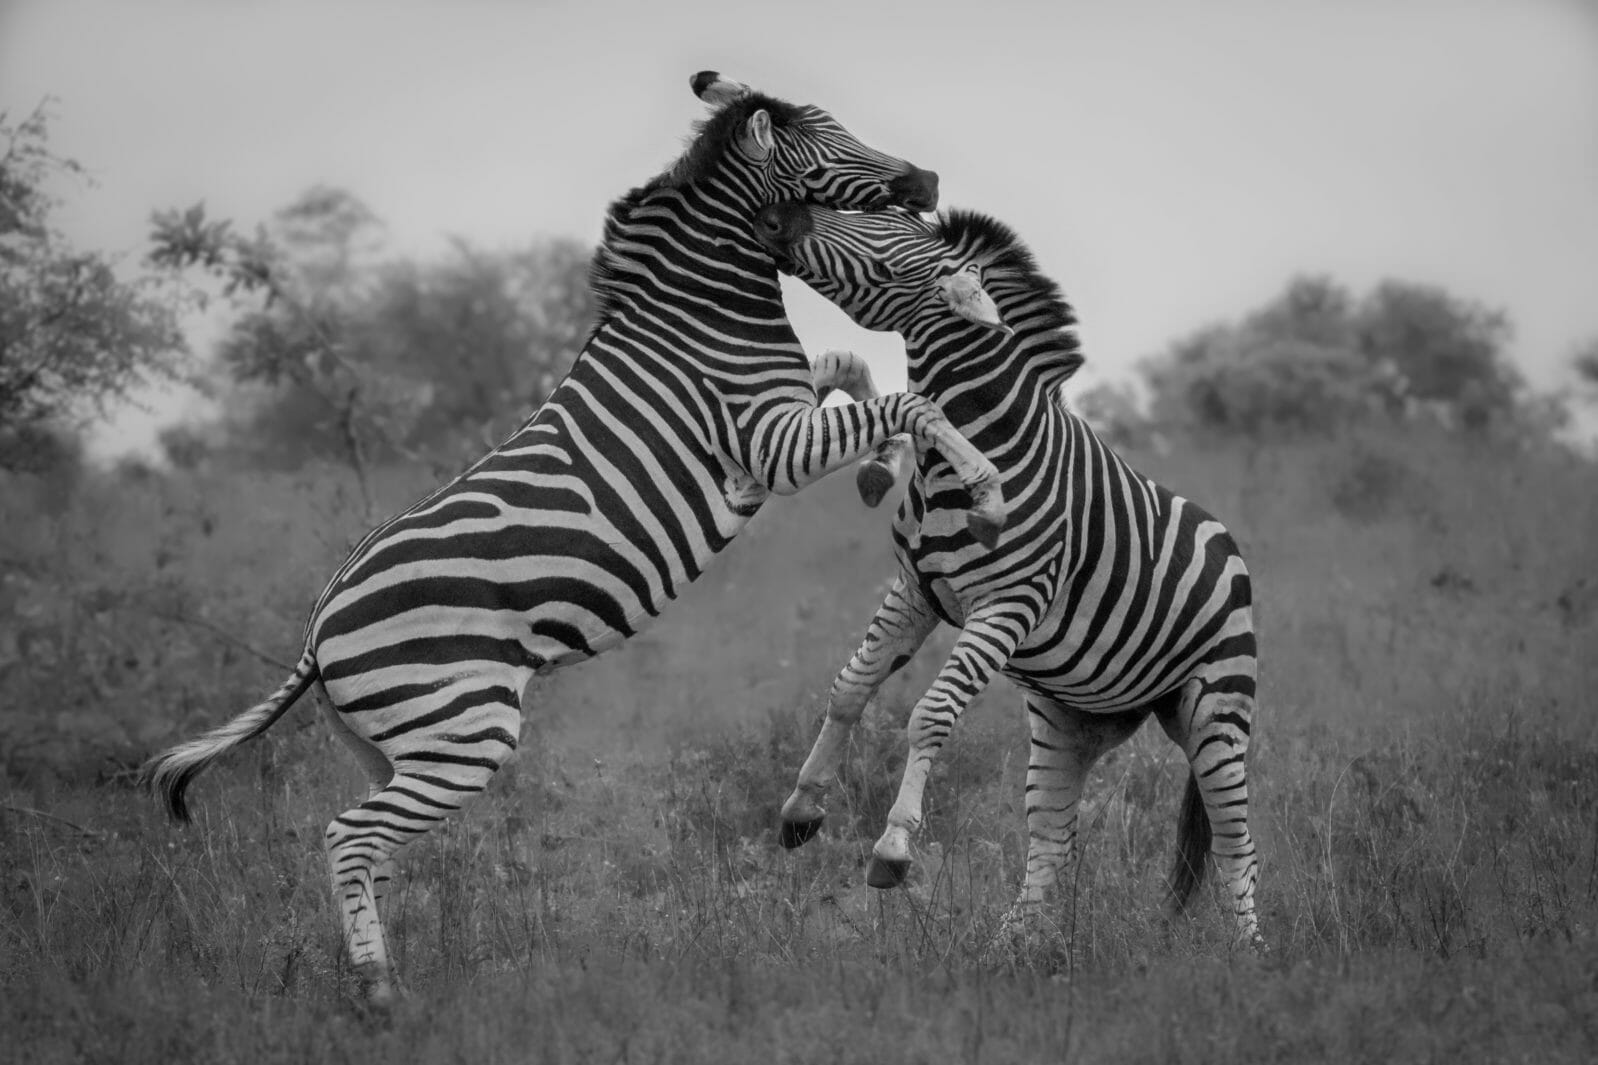 Two zebra stallions engage in a ruthless battle with bites from sharp canines and powerful kicks black and white creates a pop of their stripes and removes